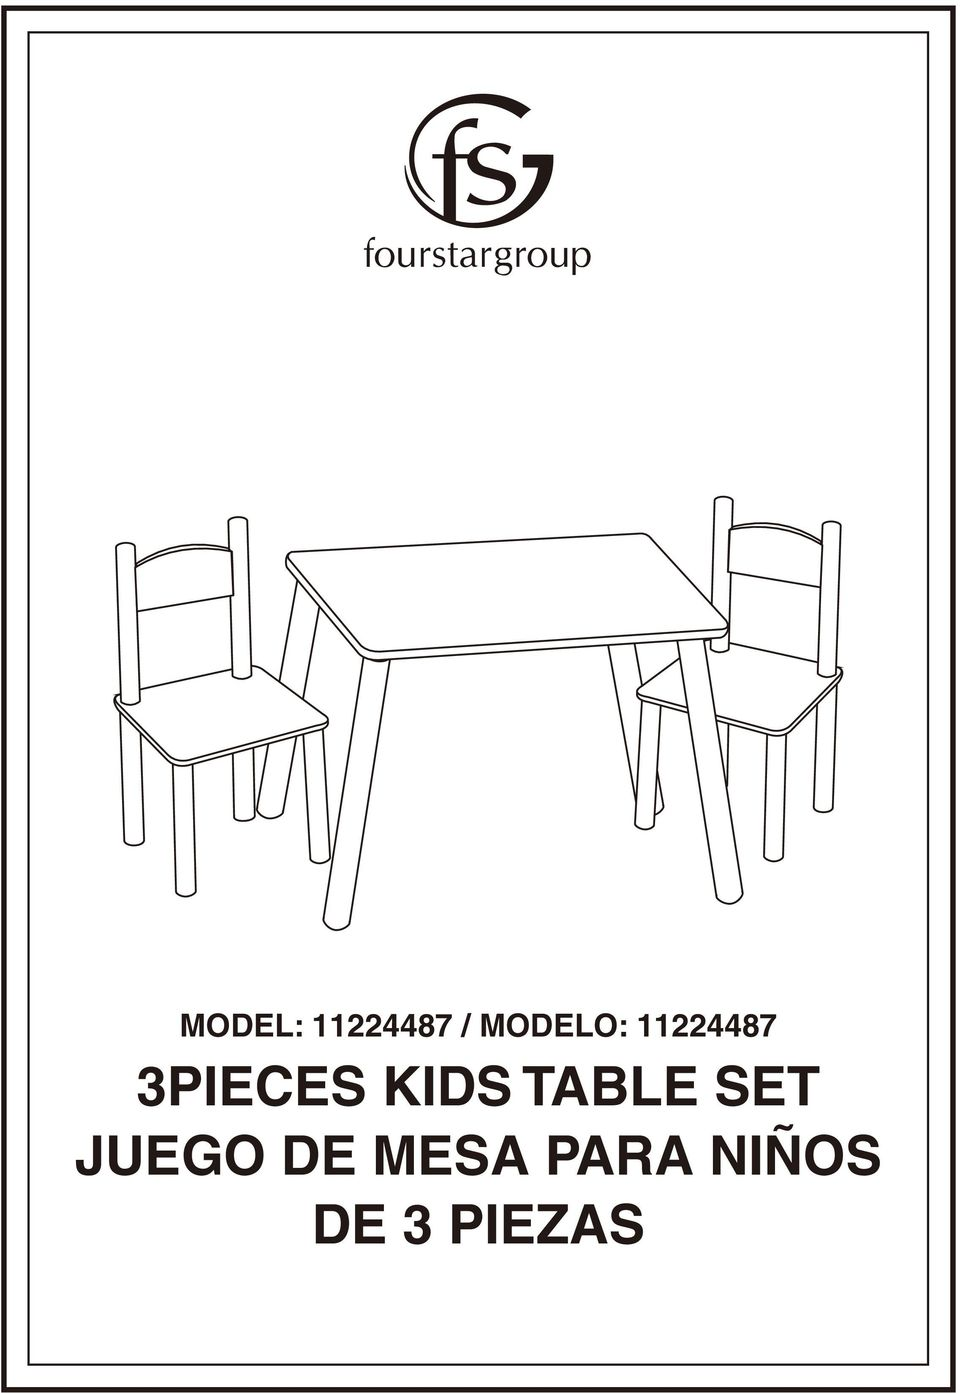 3PIECES KIDS TABLE SET